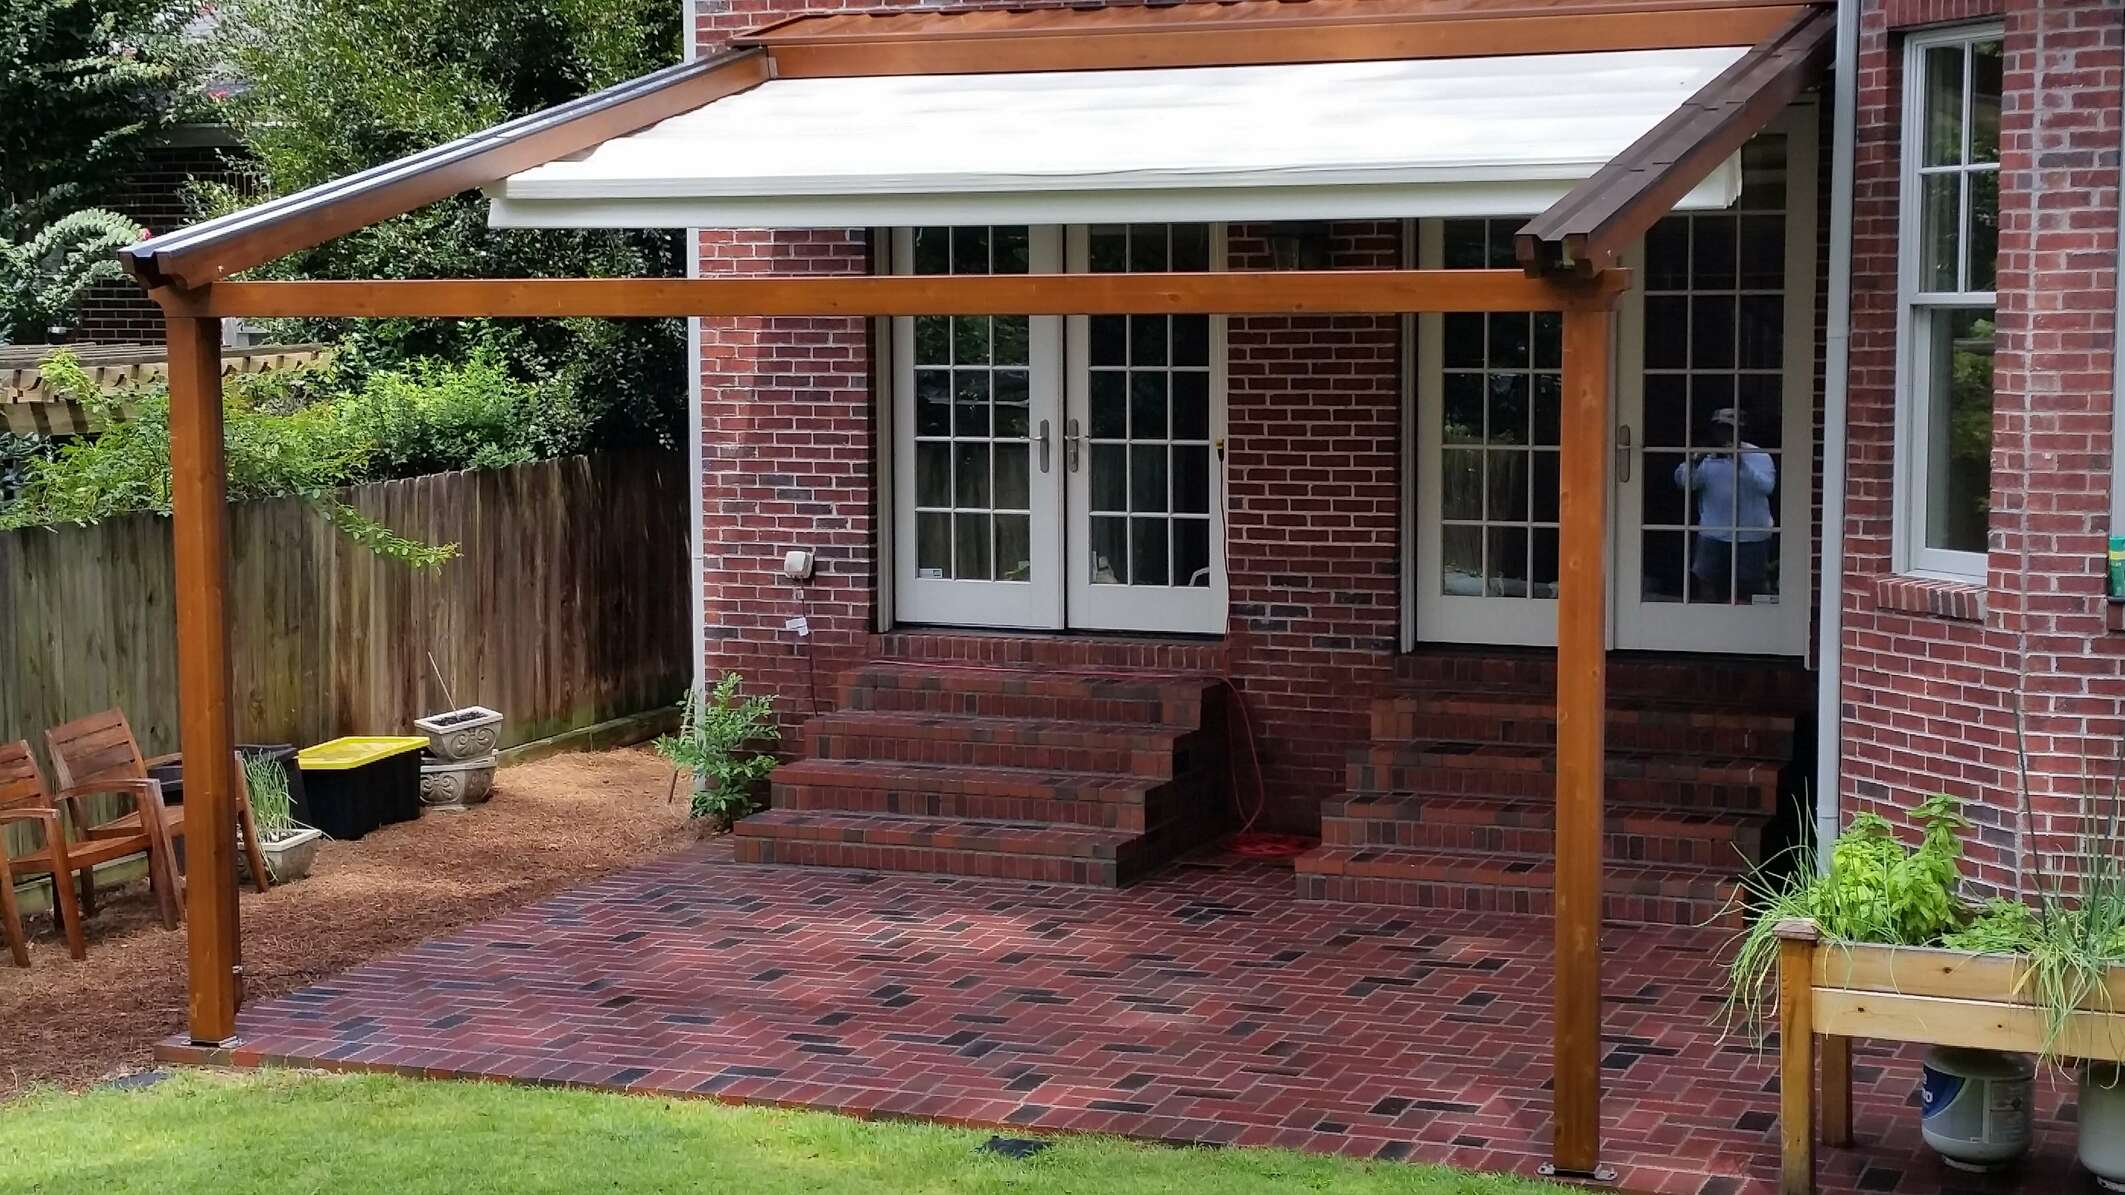 monza wood frame retractable waterproof patio deck cover system